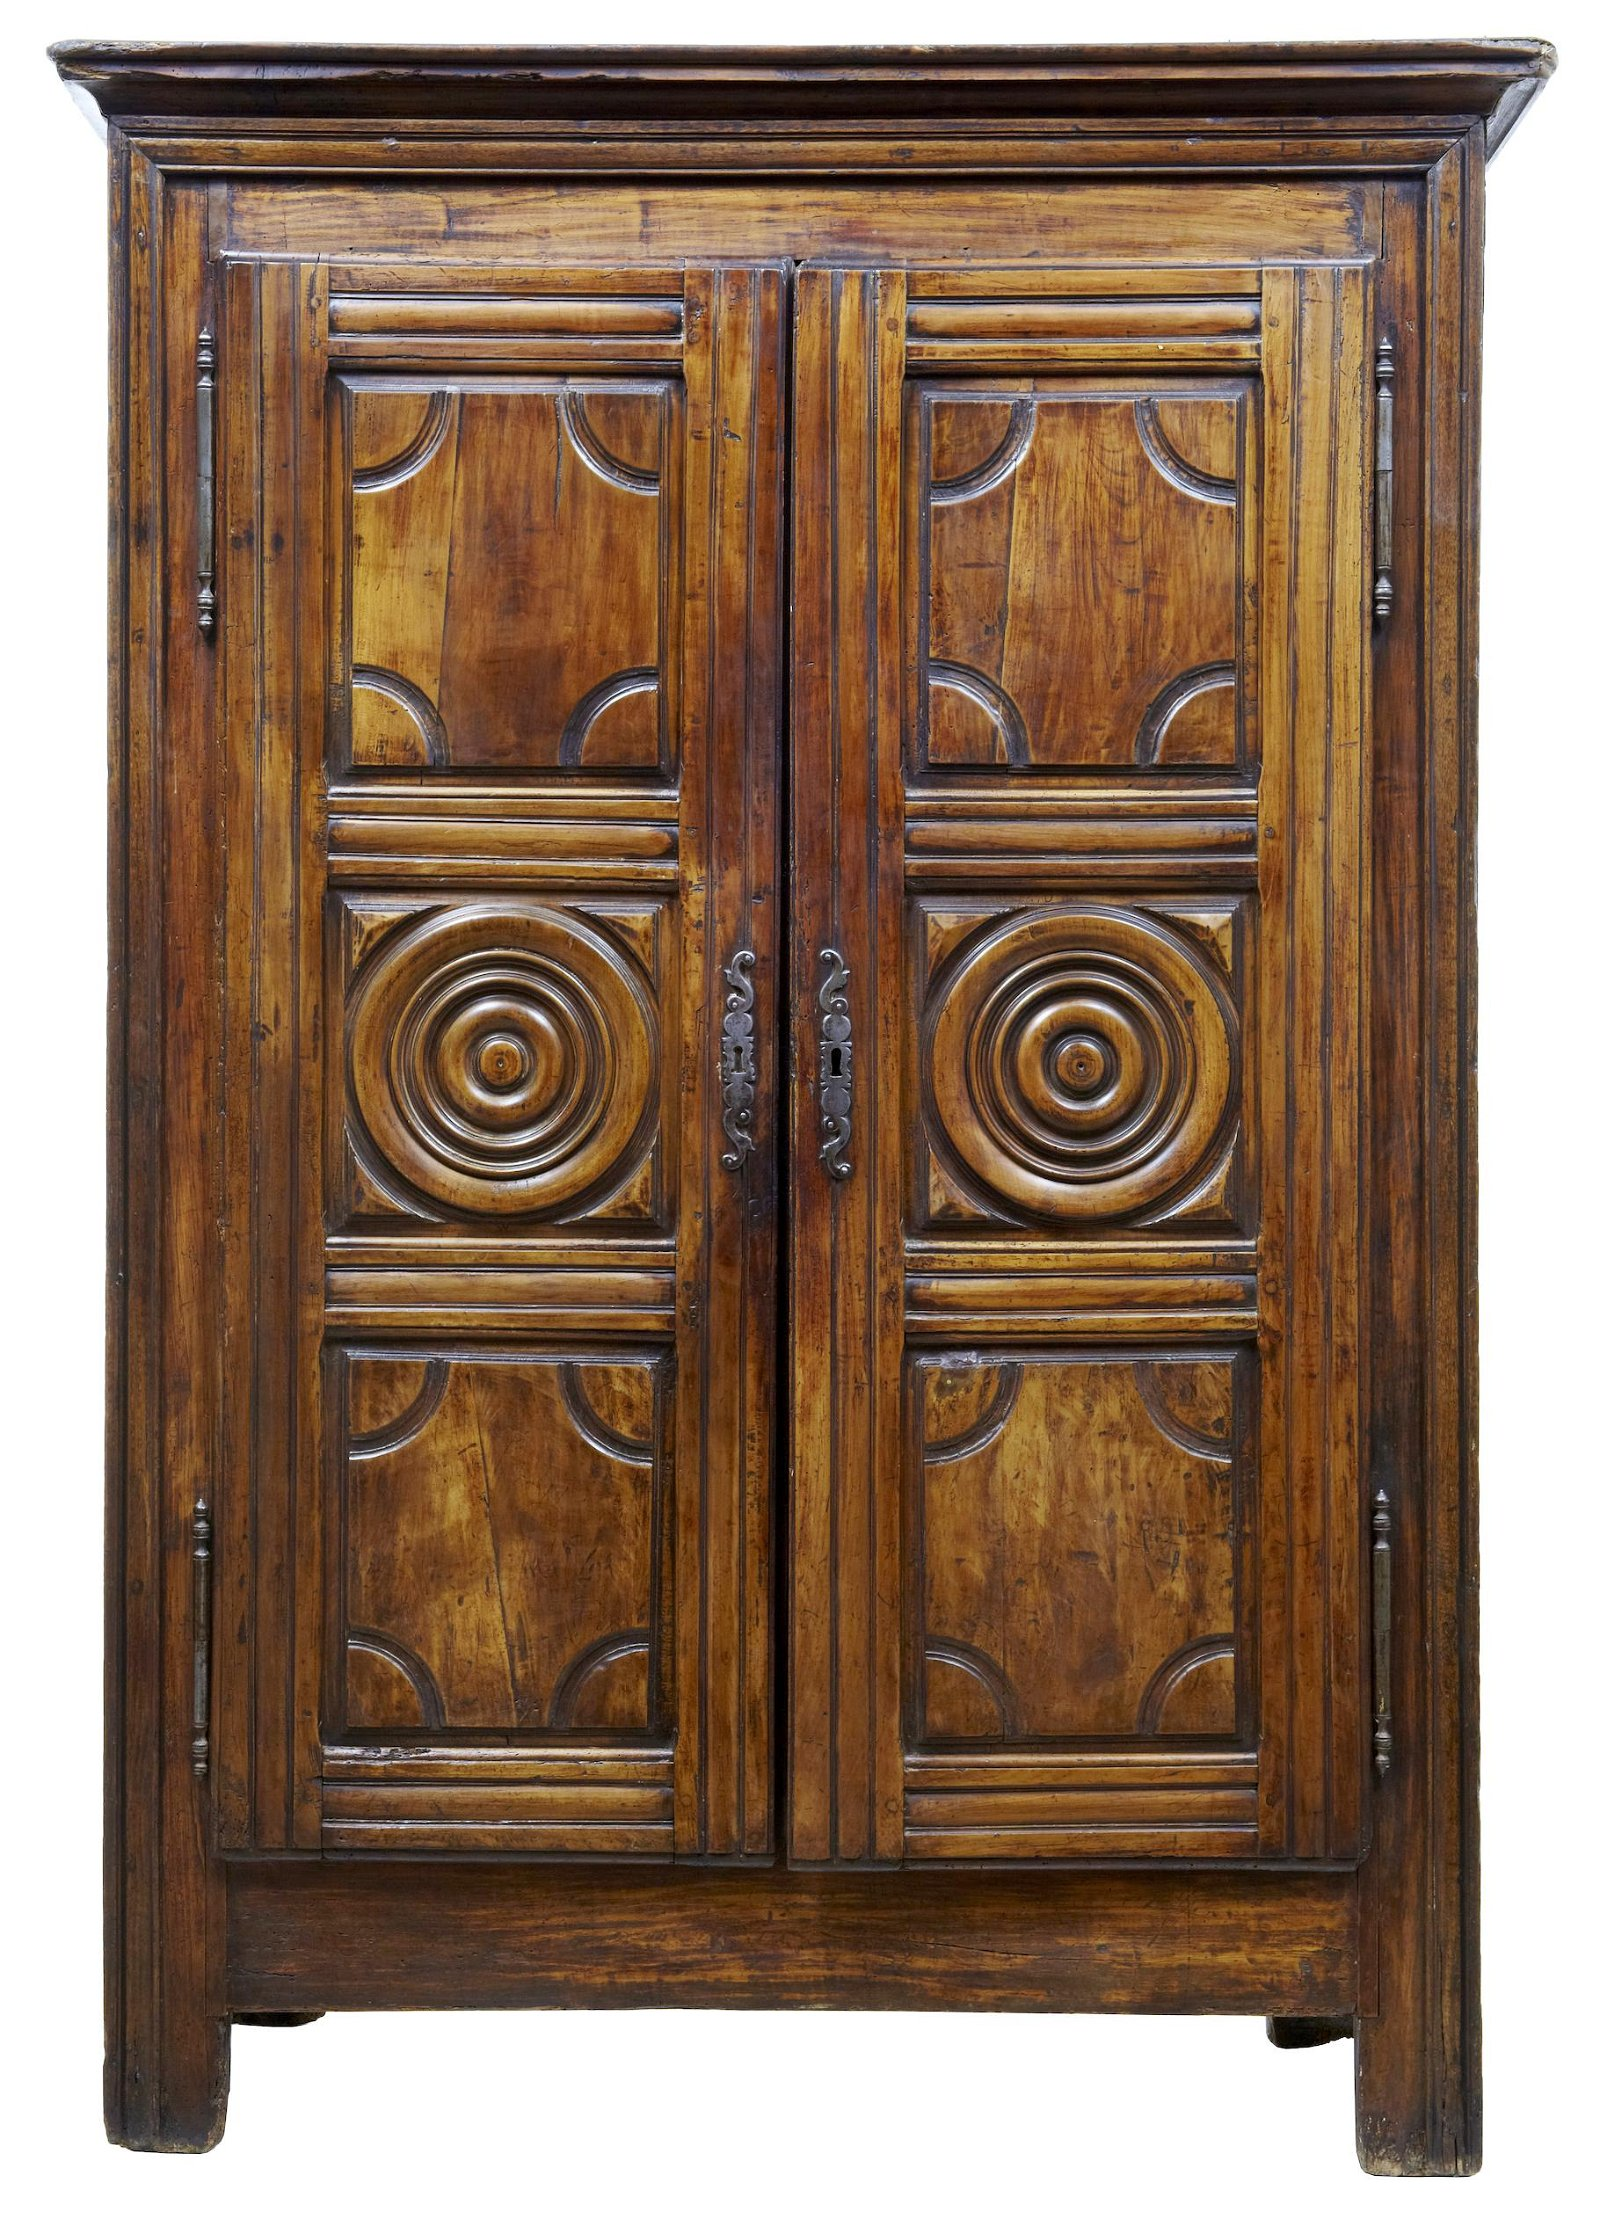 18TH CENTURY FRENCH FRUITWOOD ARMOIRE